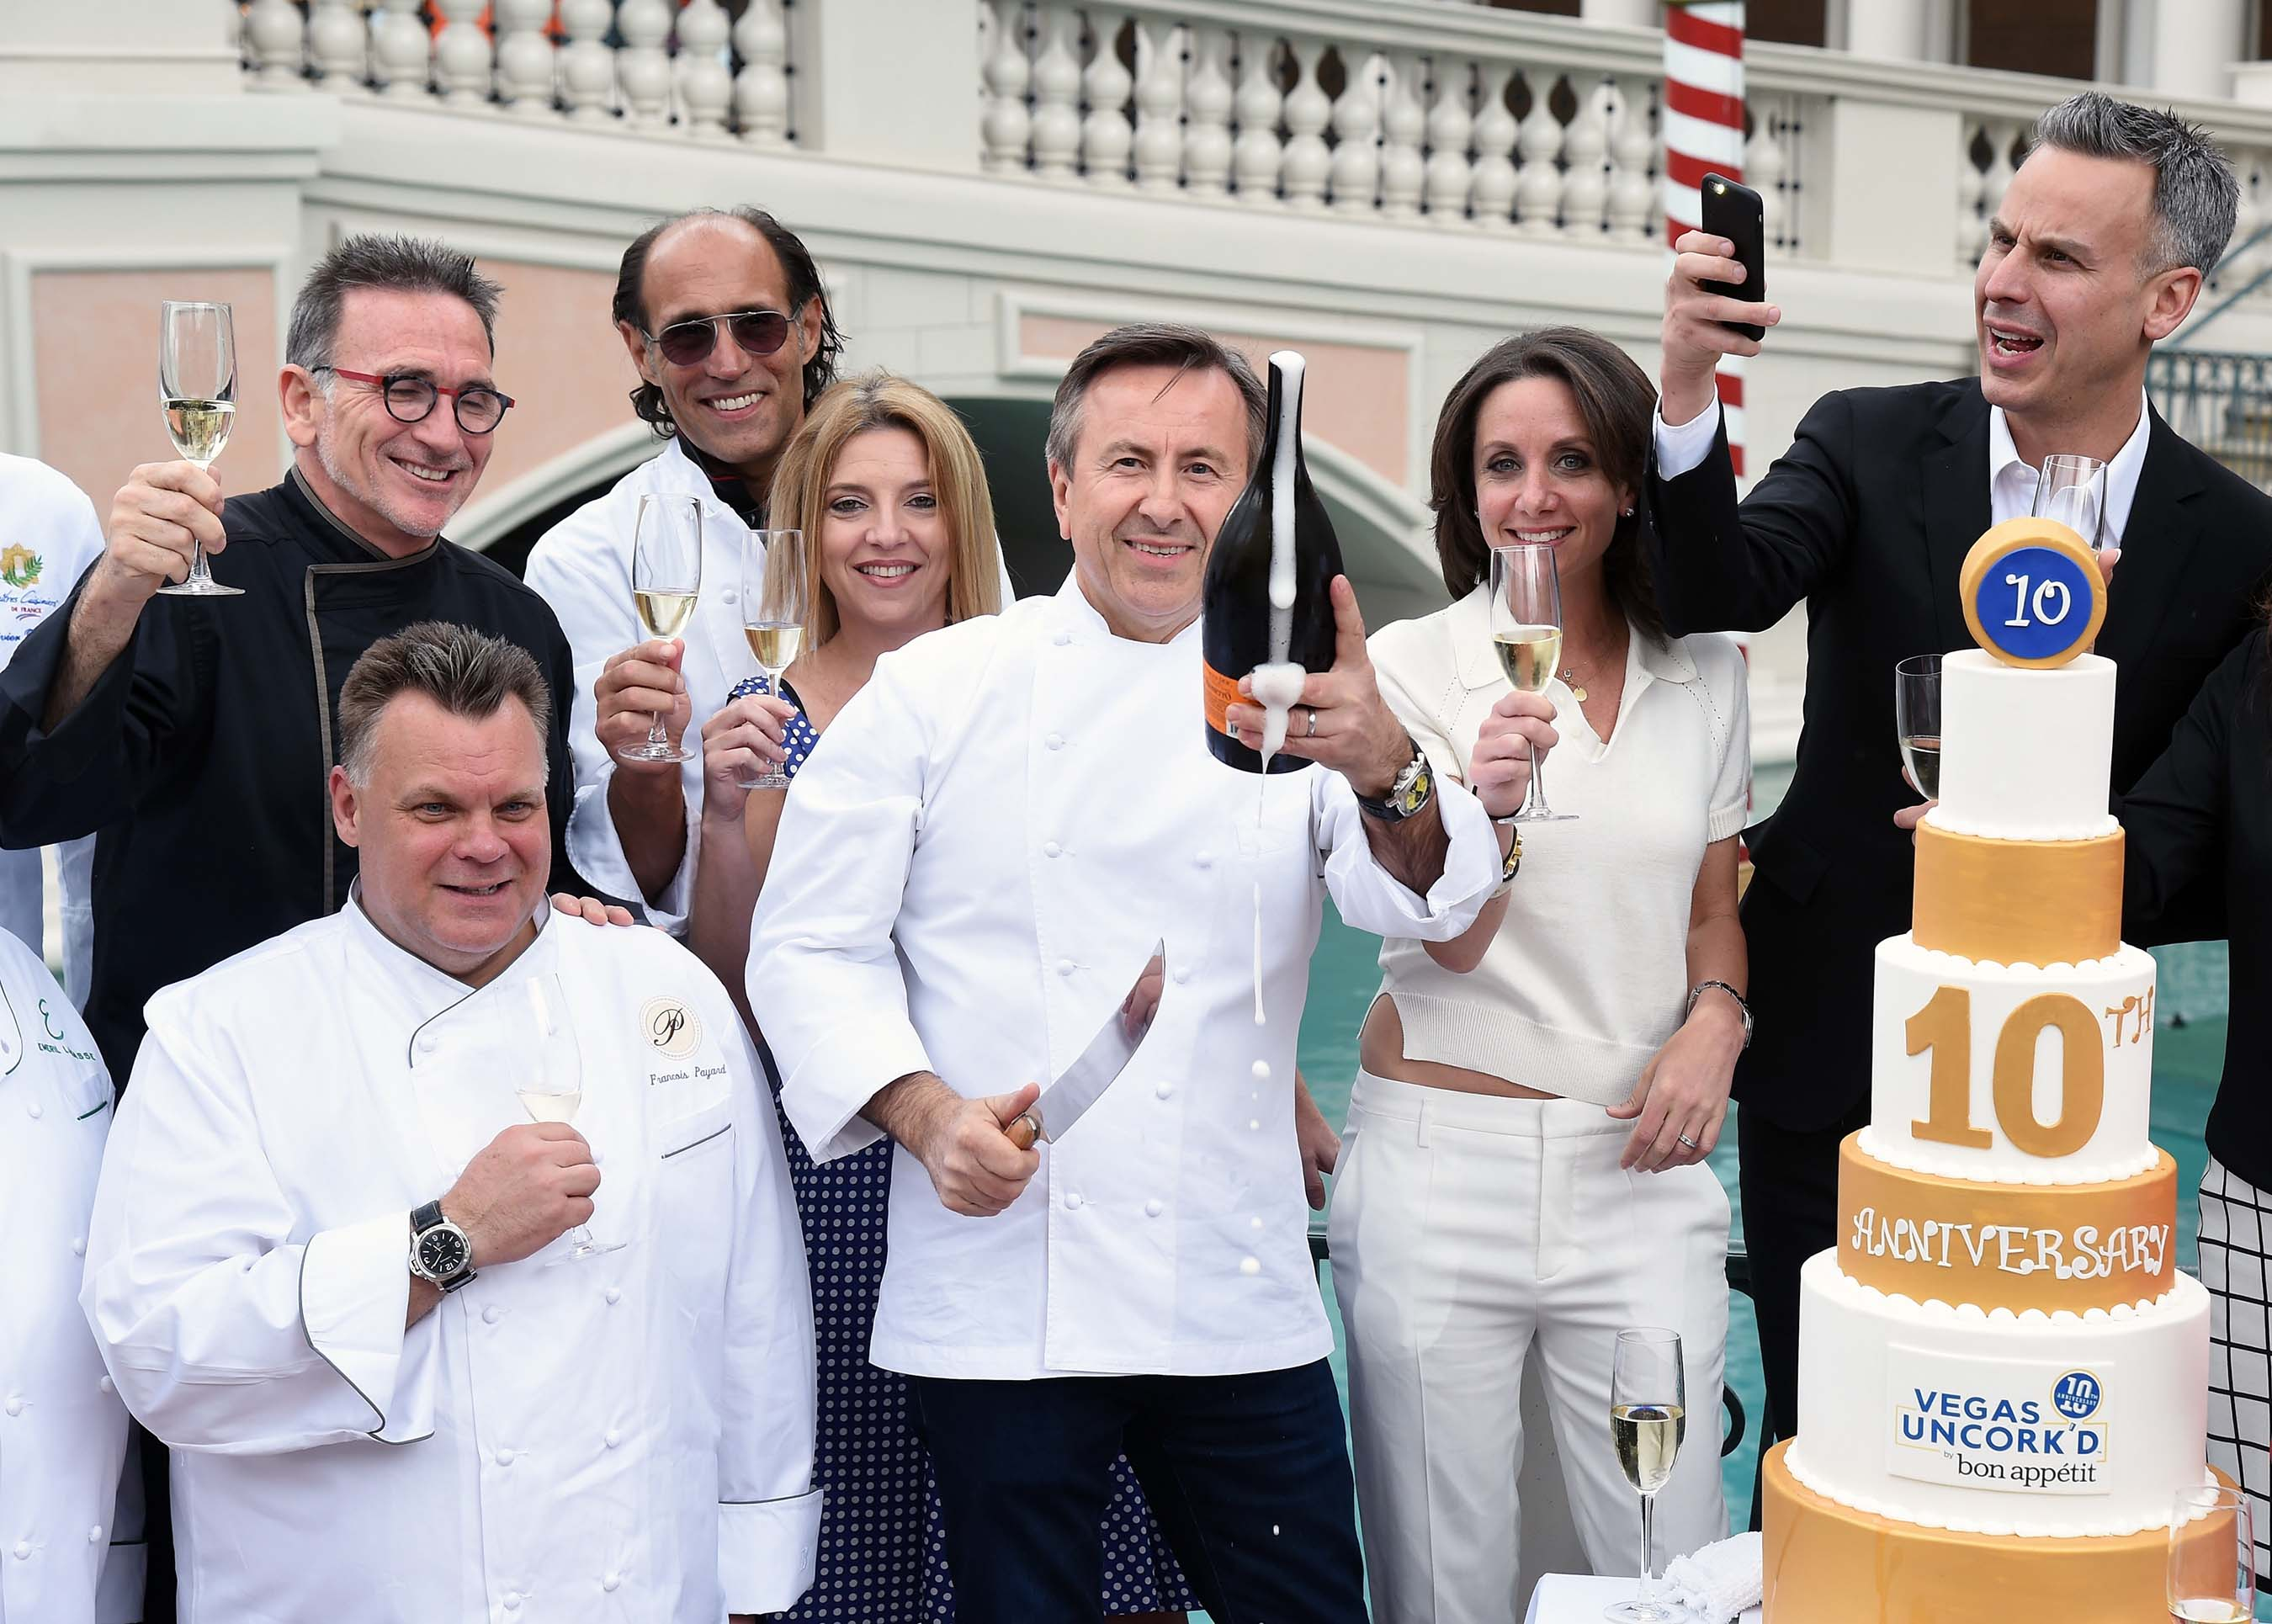 Chef Daniel Boulud toasts to the 10th anniversary at Saber Off during Vegas Uncork'd by Bon Appétit presented by Chase Sapphire Preferred (Photo by Ethan Miller/Getty Images for Vegas Uncork'd)